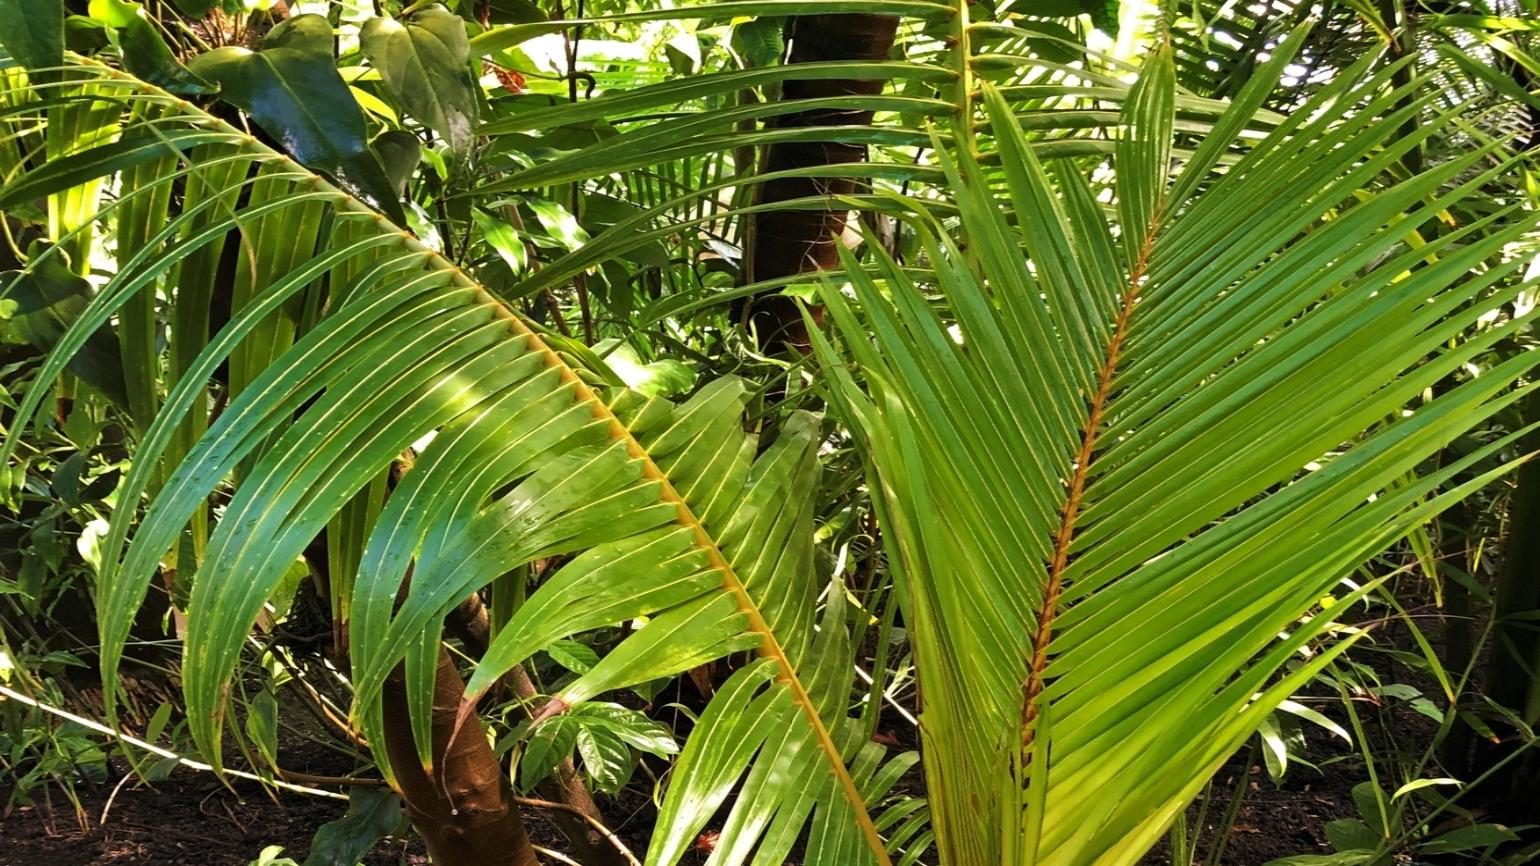 Green coconut palm leaves in Kew's Palm House